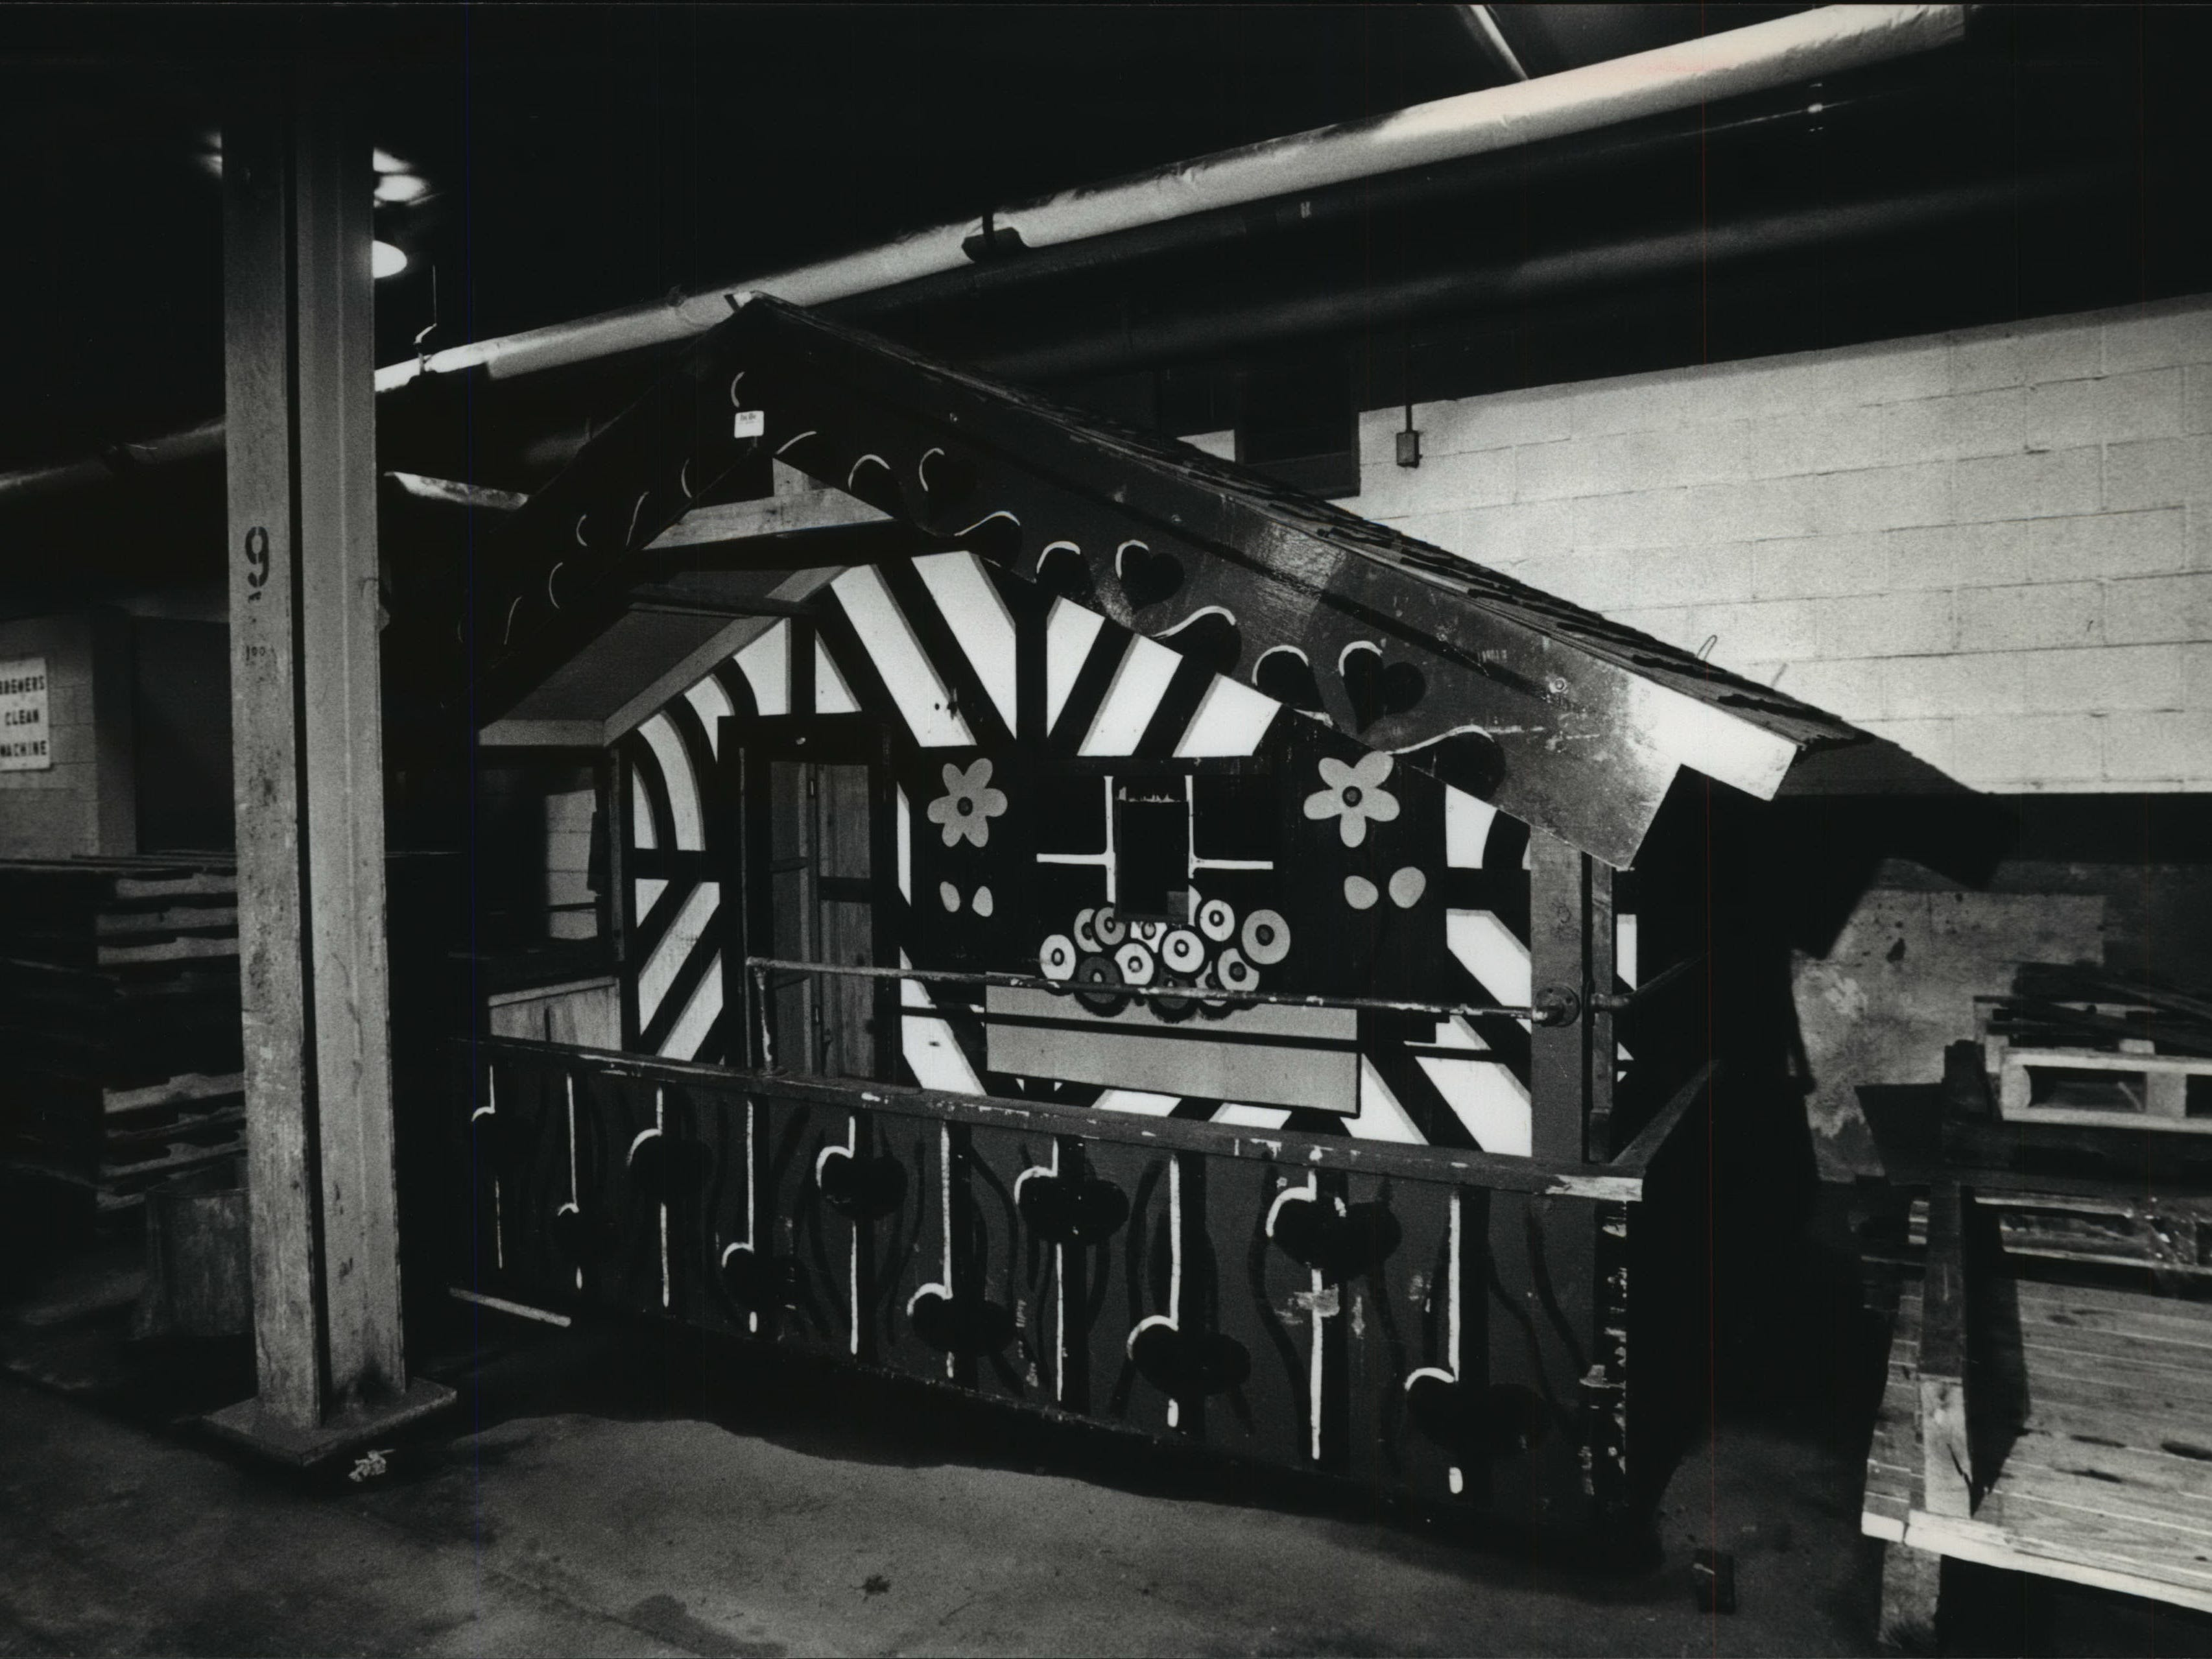 Bernie Brewer's chalet sits in storage beneath County Stadium in April 1993, waiting to be reintroduced to fans later that season when the Milwaukee Brewers finished installing a new giant beer barrel and mug in the stadium's bleachers. This photo was published in the April 11, 1993, Milwaukee Journal.